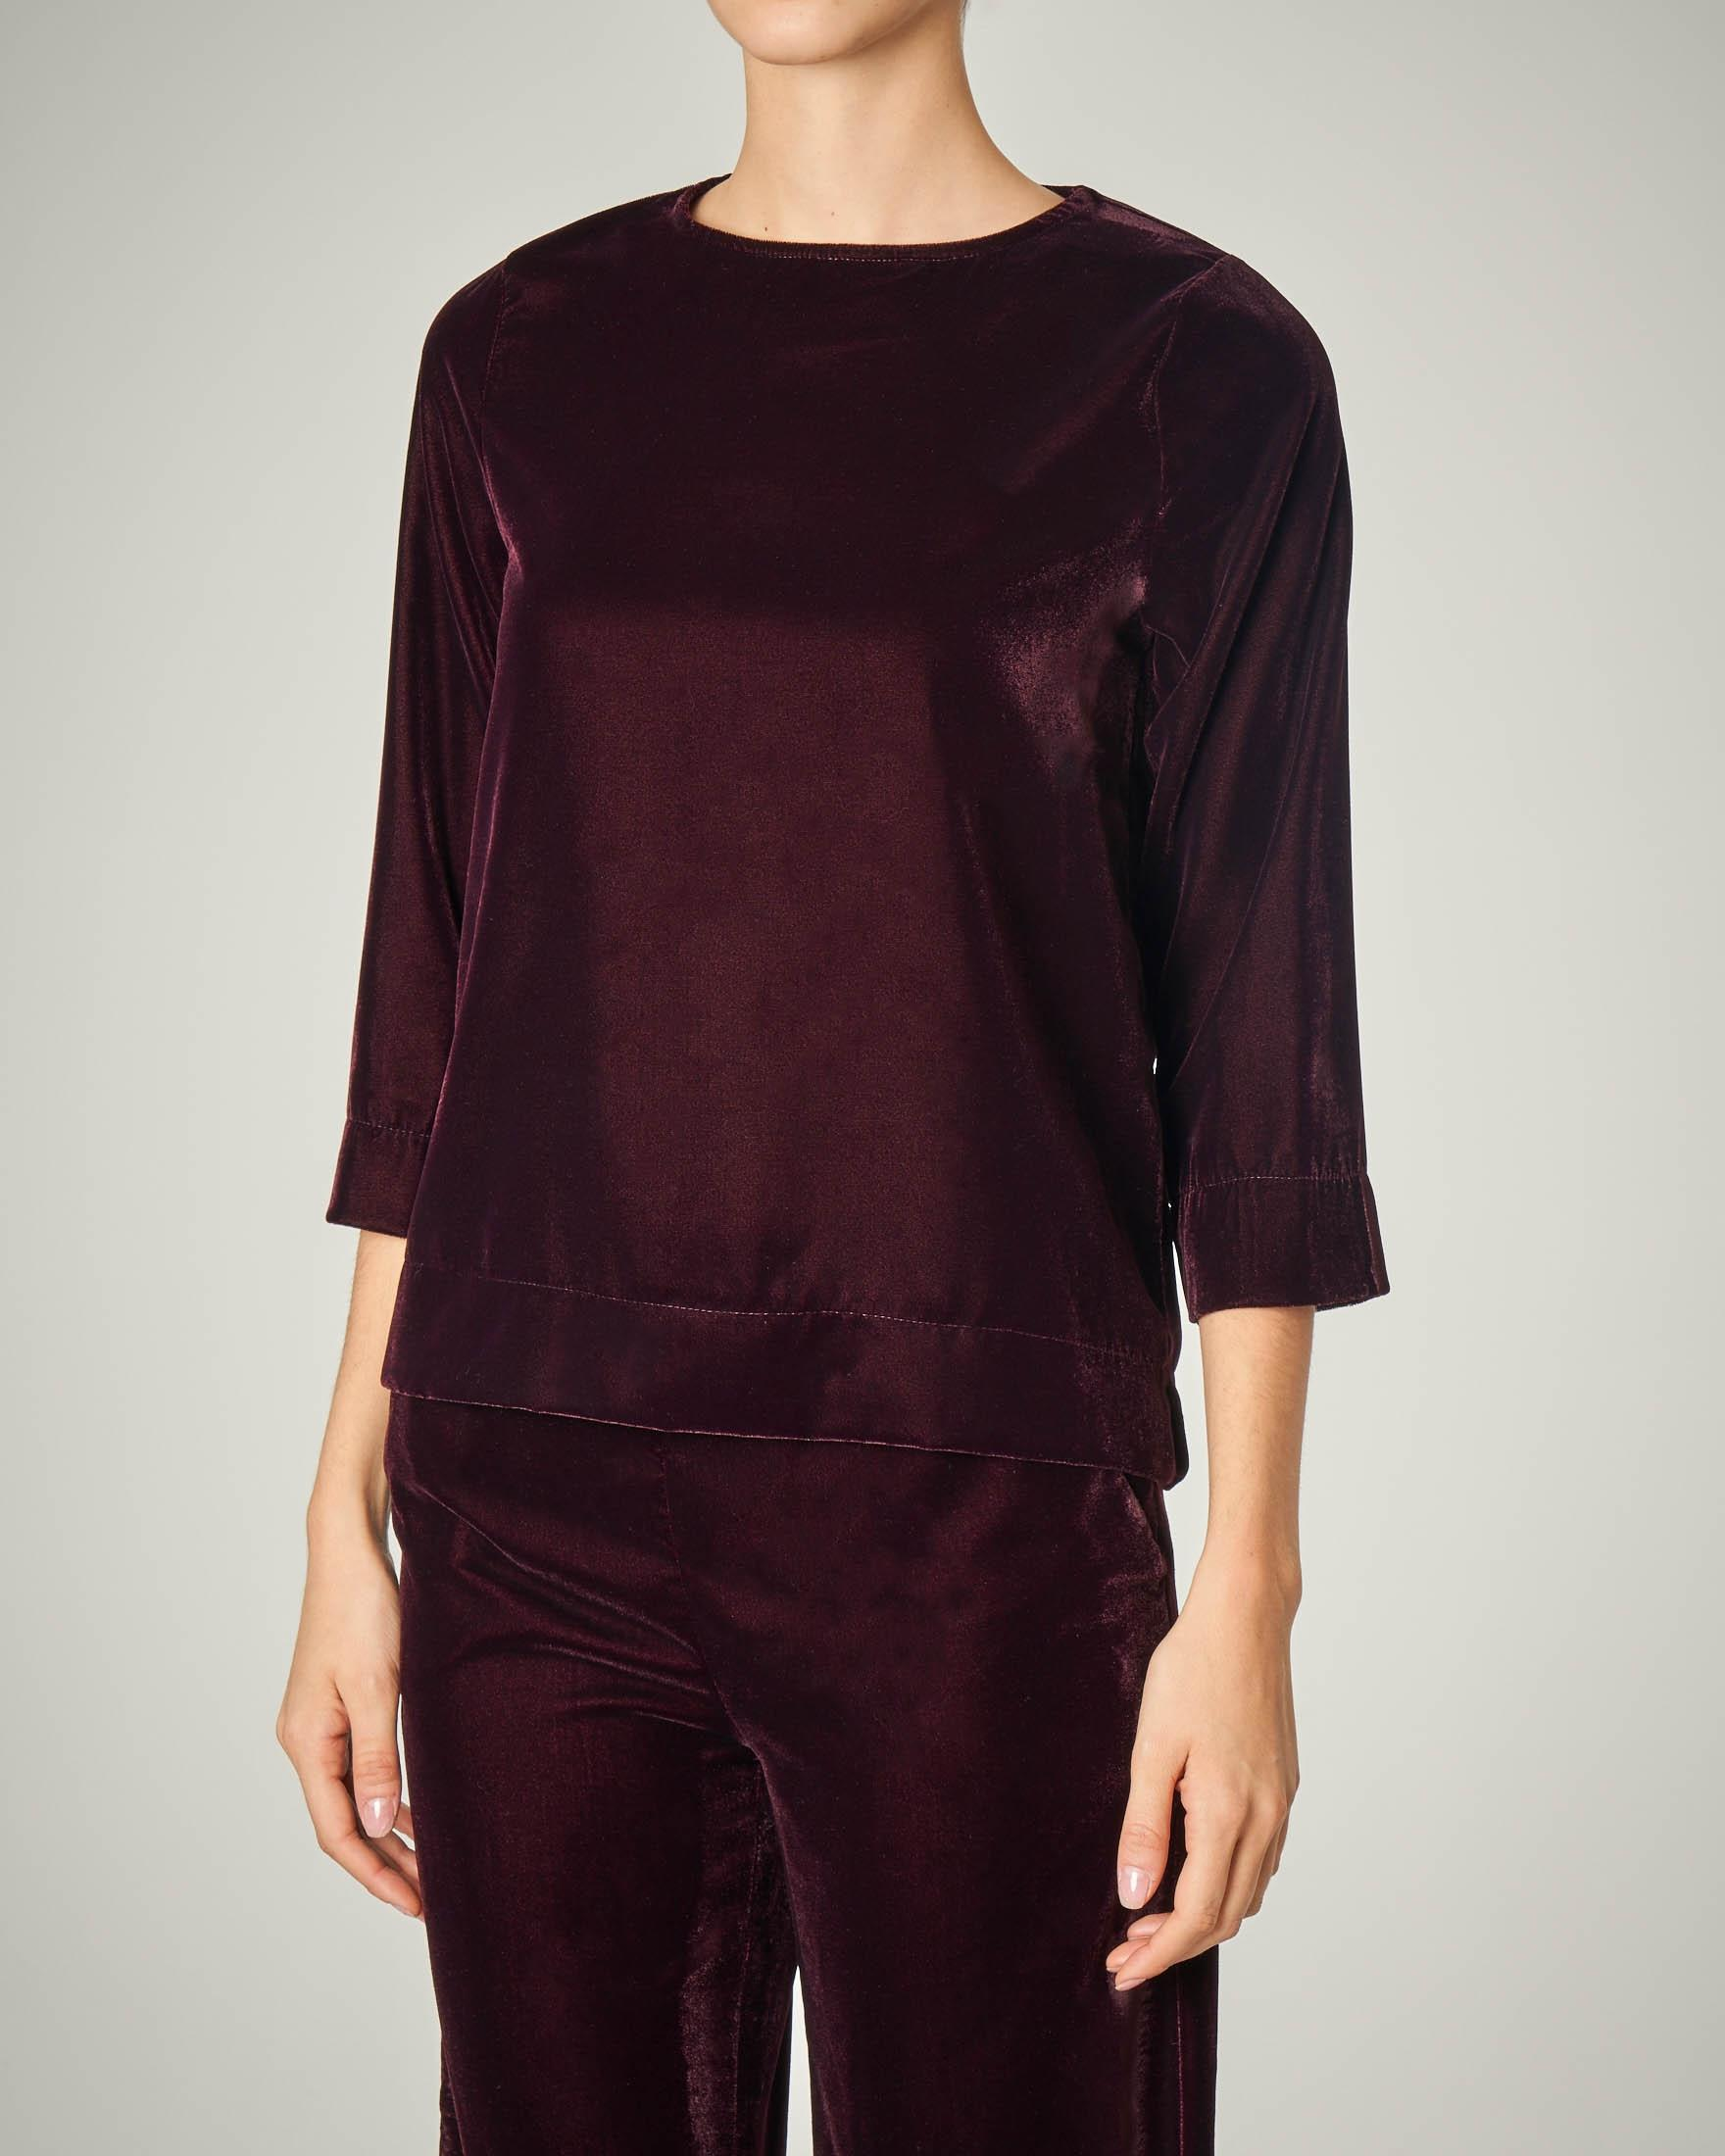 Blusa in velluto bordeaux